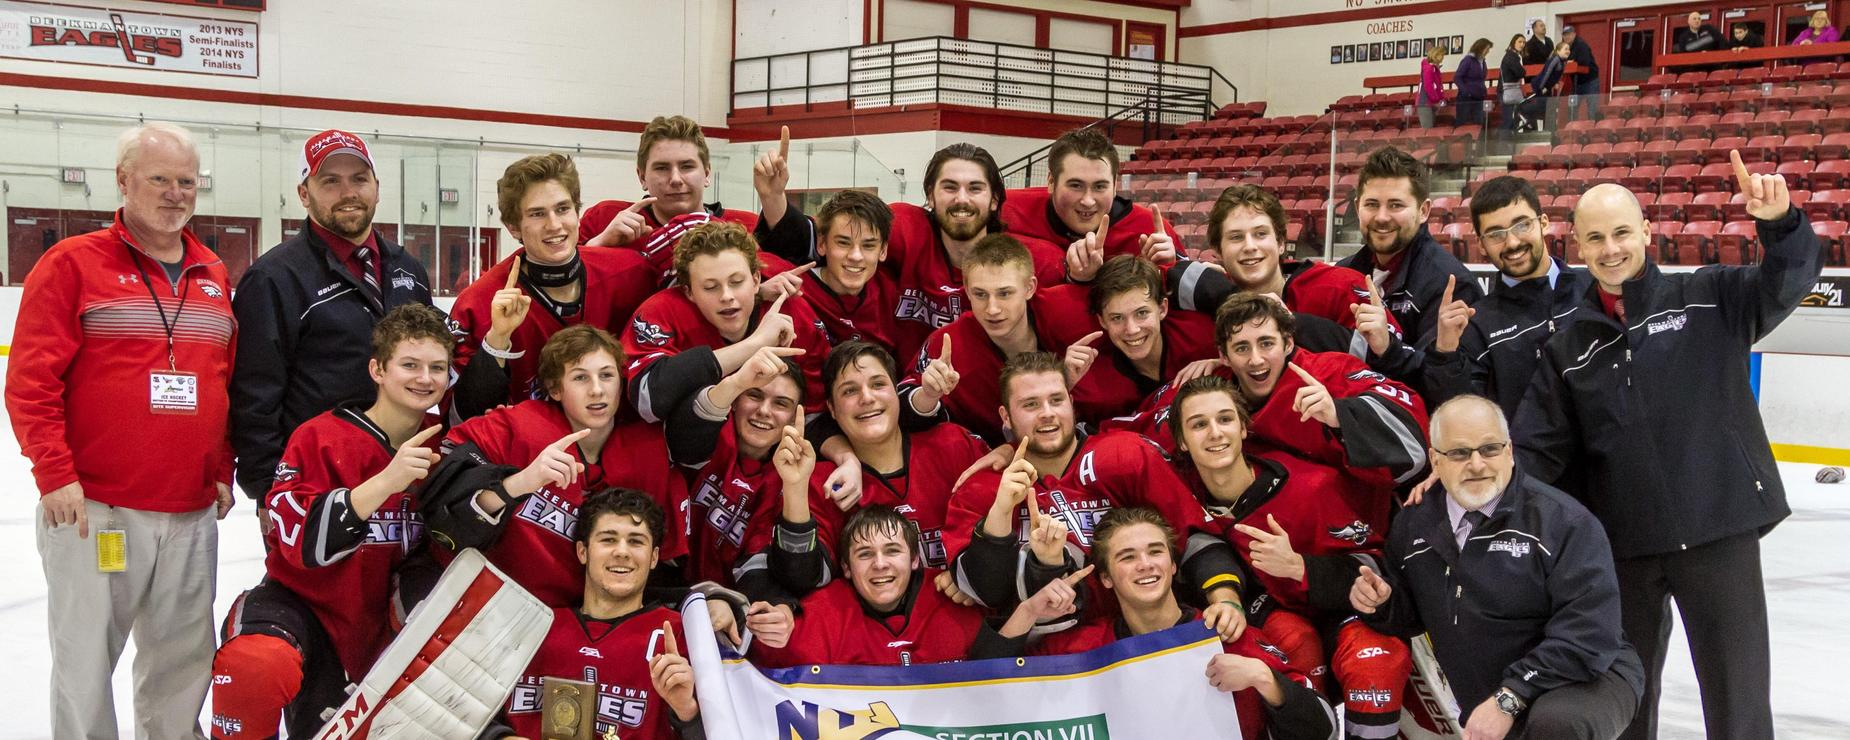 The Varsity Hockey Team right after winning, huddling around a banner all smiling and hold up their pointer finger to signify being the Number One team in their Championship